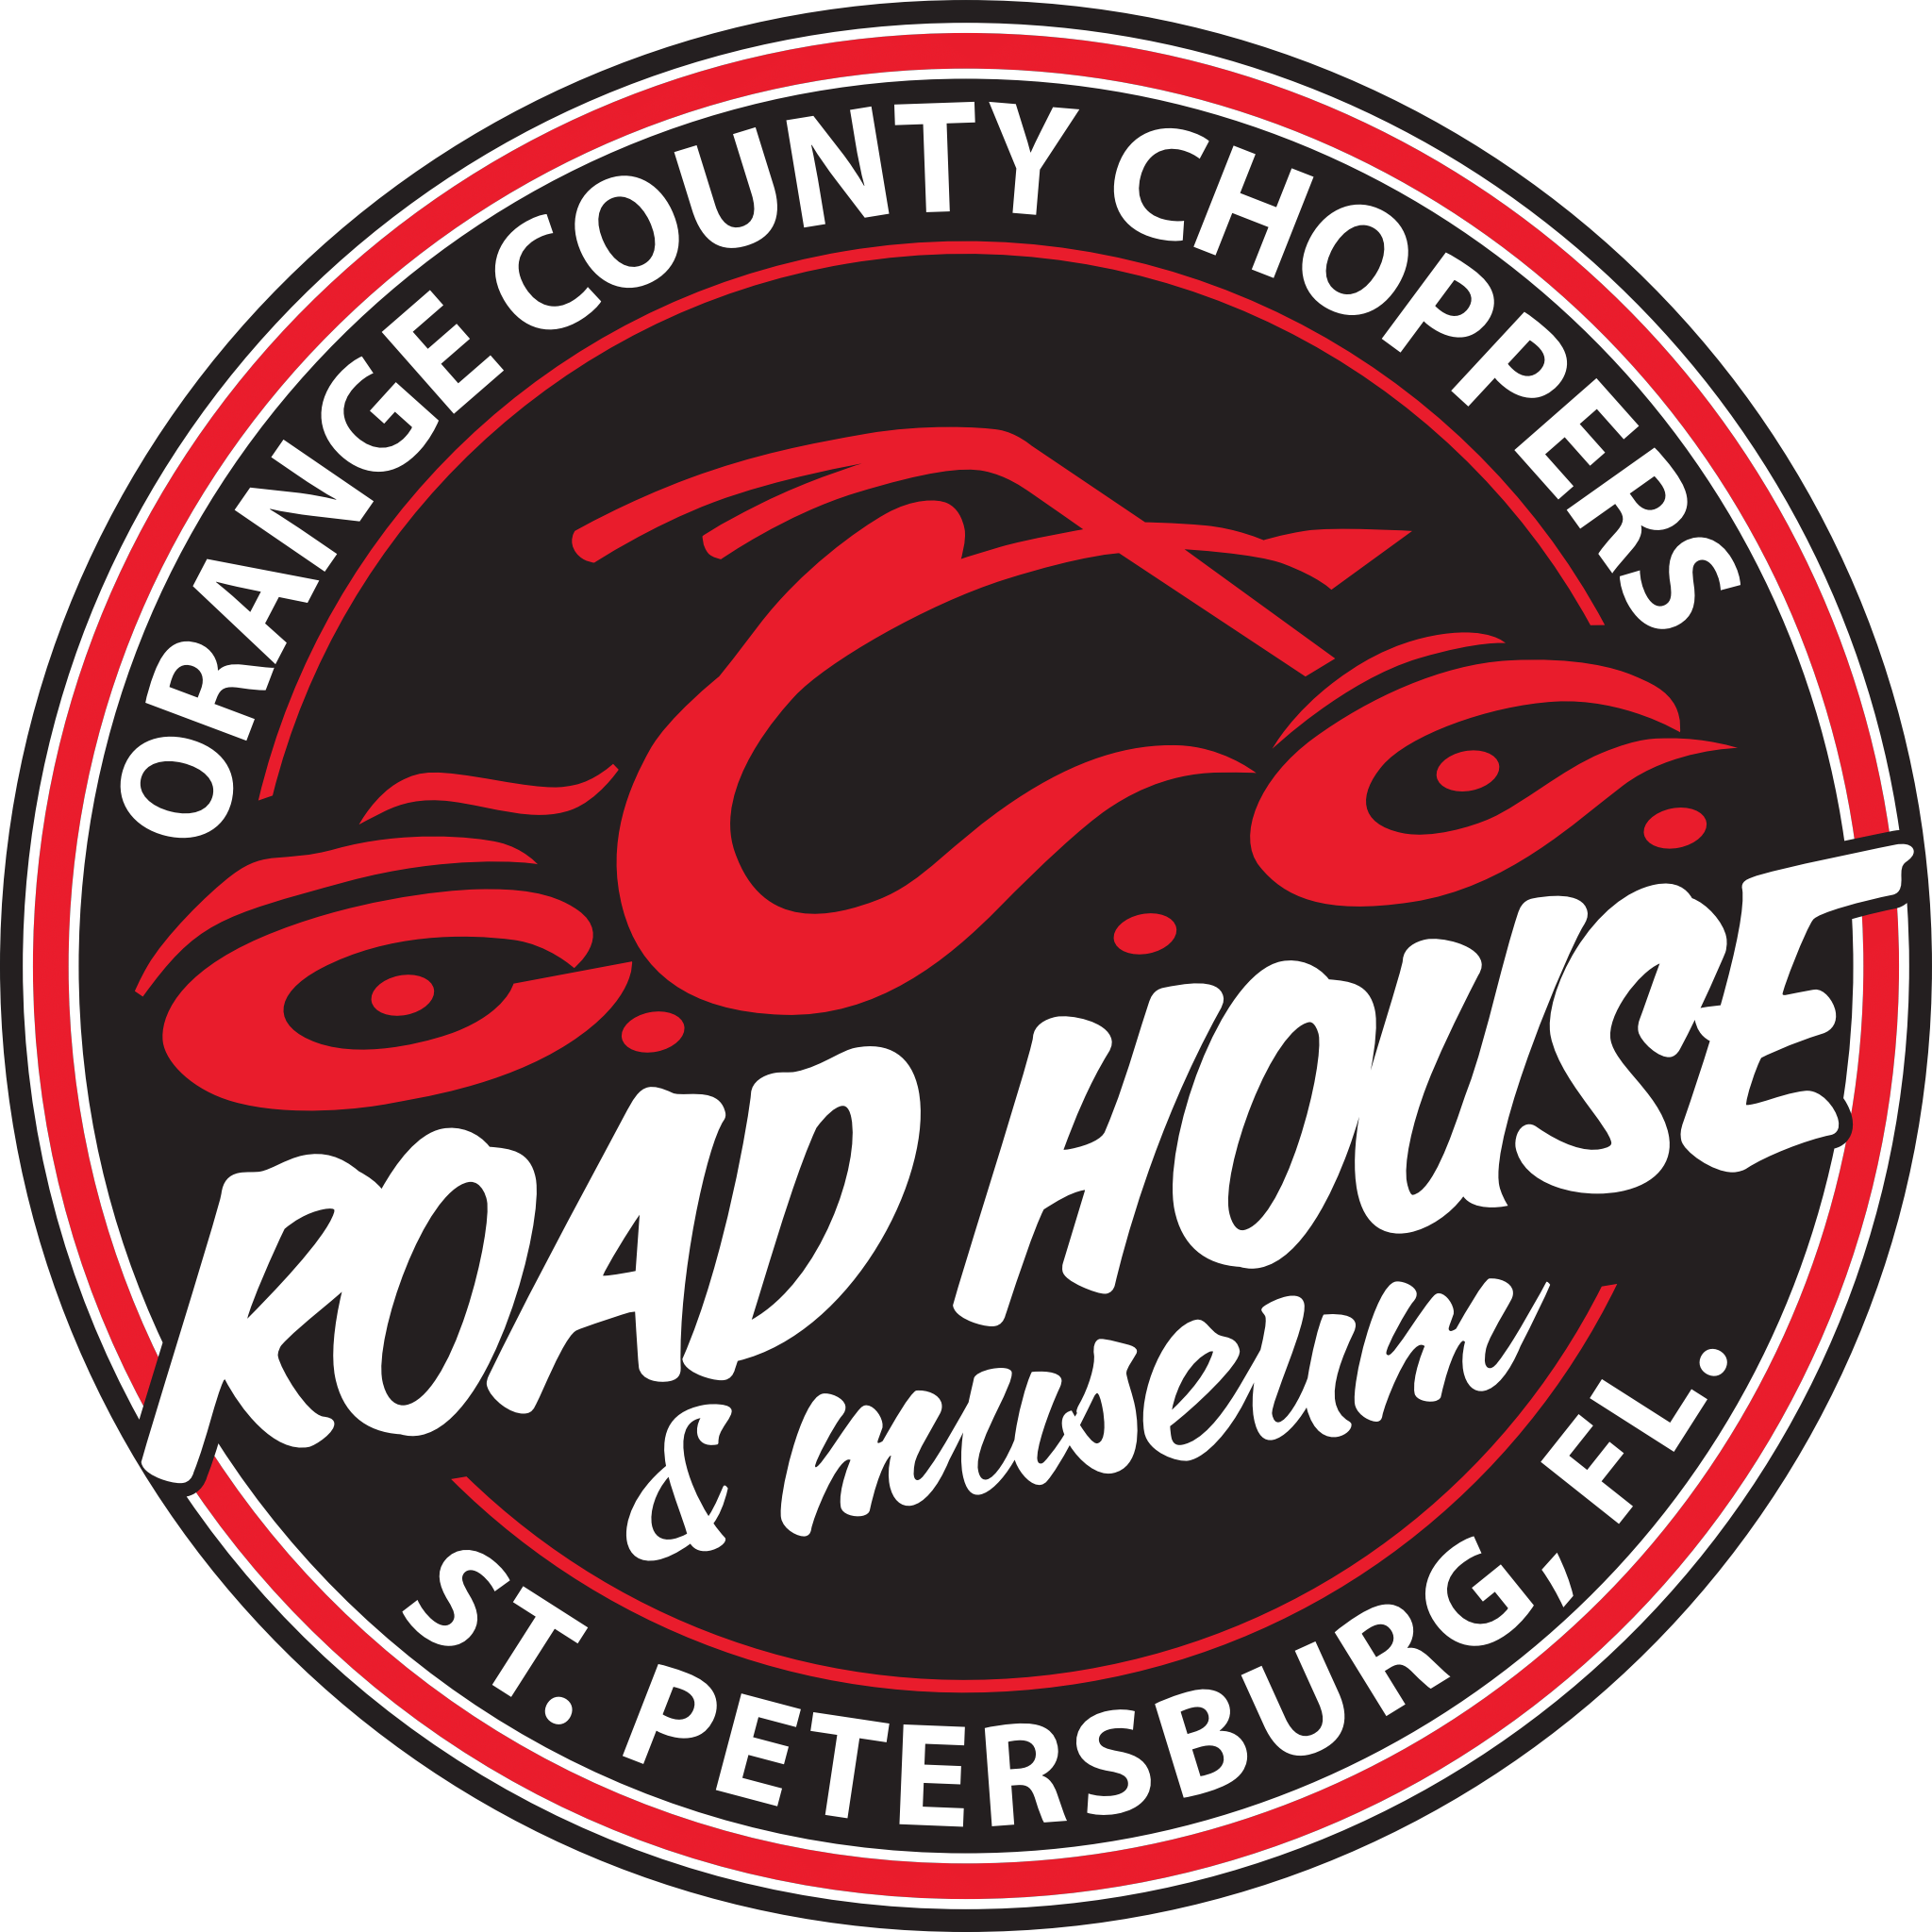 Orange County Choppers Road House & Museum